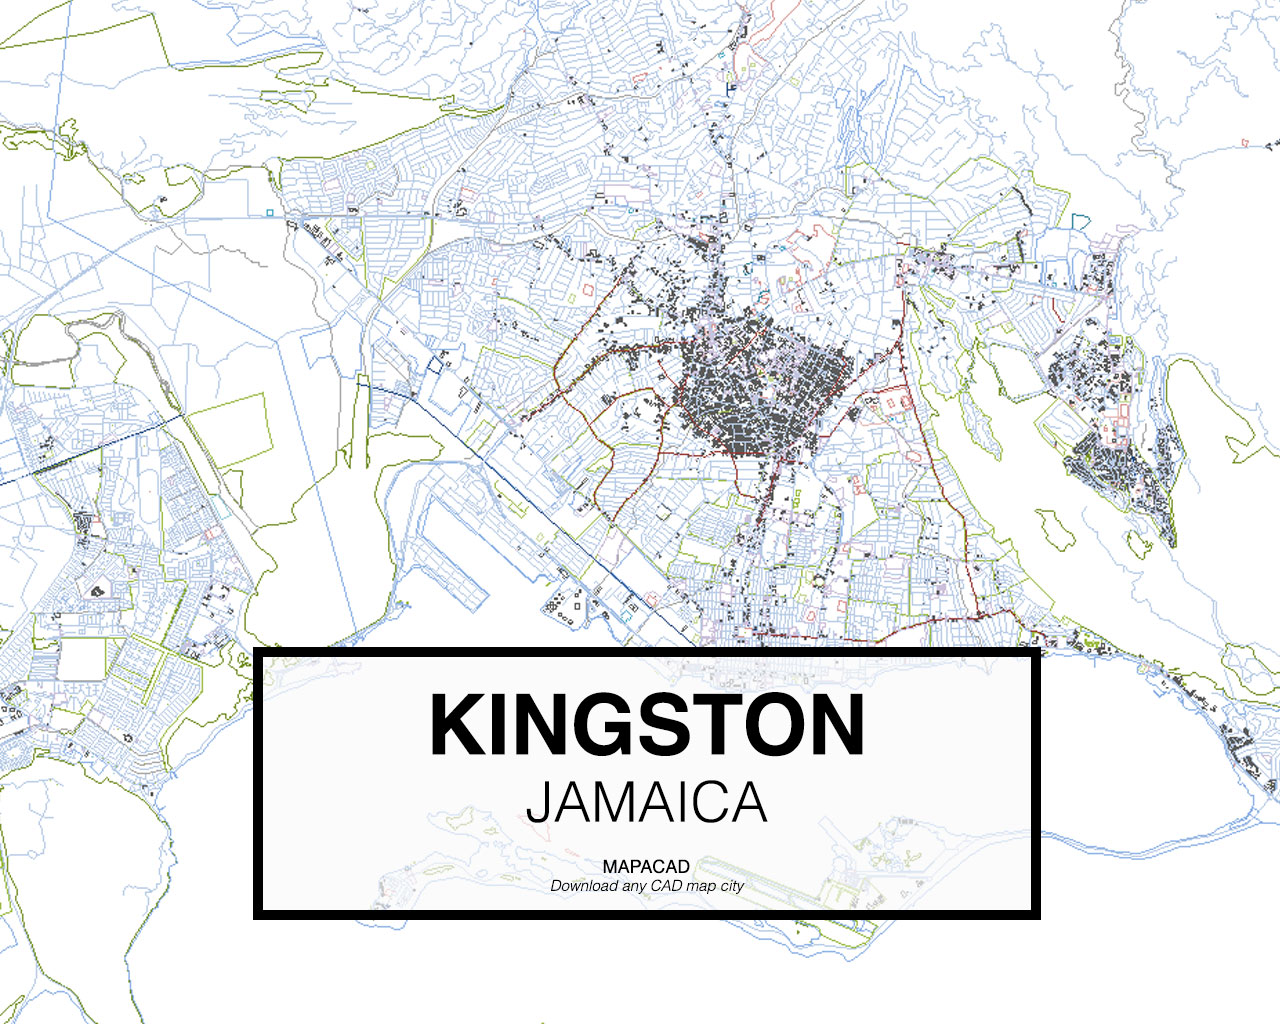 Download kingston dwg mapacad kingston jamaica 01 mapacad download map cad dwg gumiabroncs Image collections